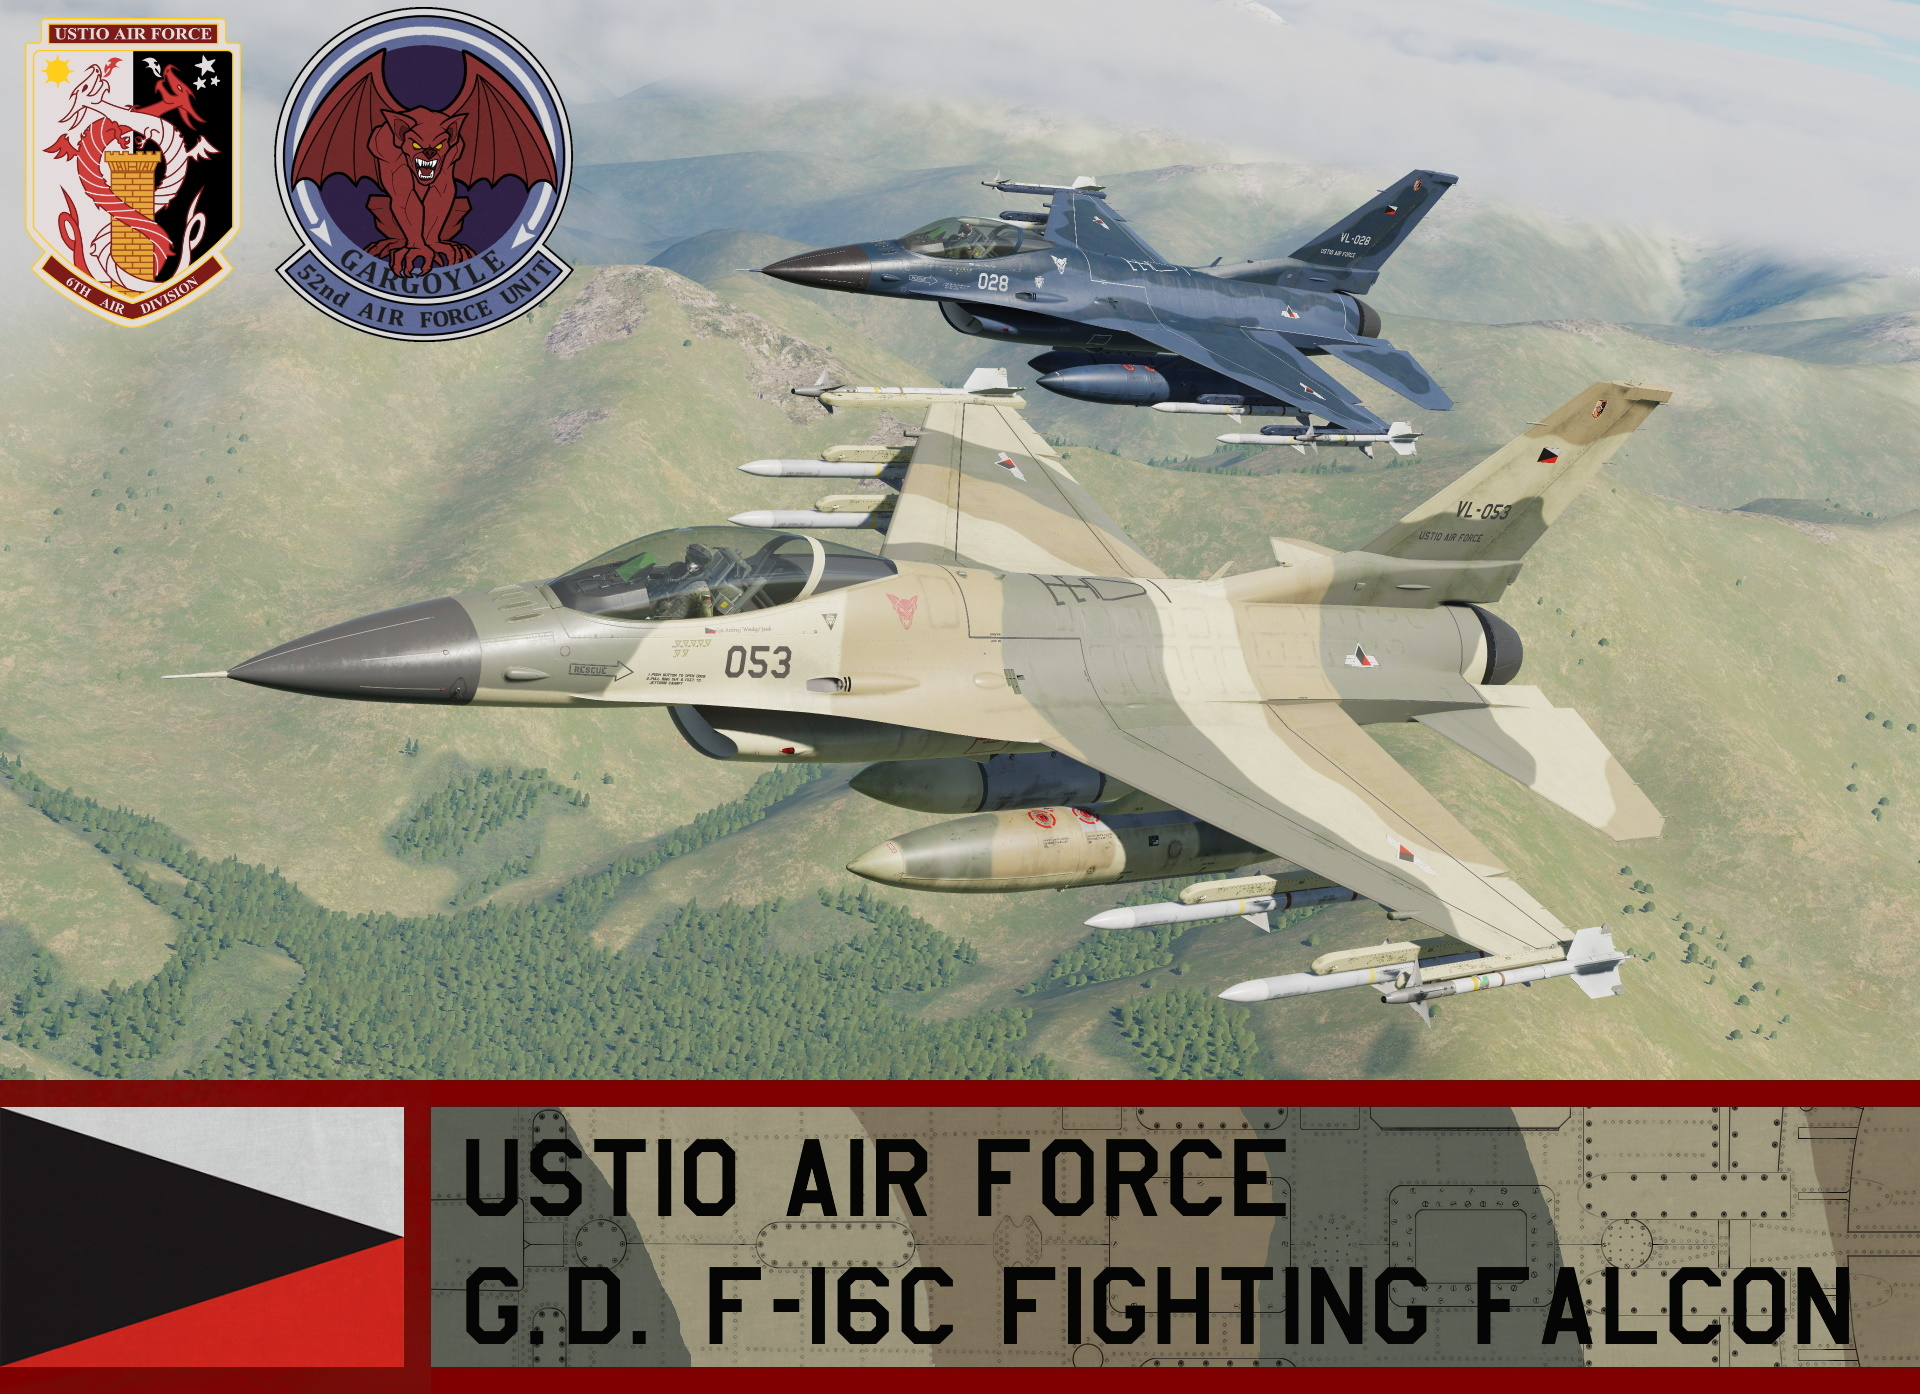 Ustio Air Force F-16C Block 50 - Ace Combat Zero (52nd AFU)